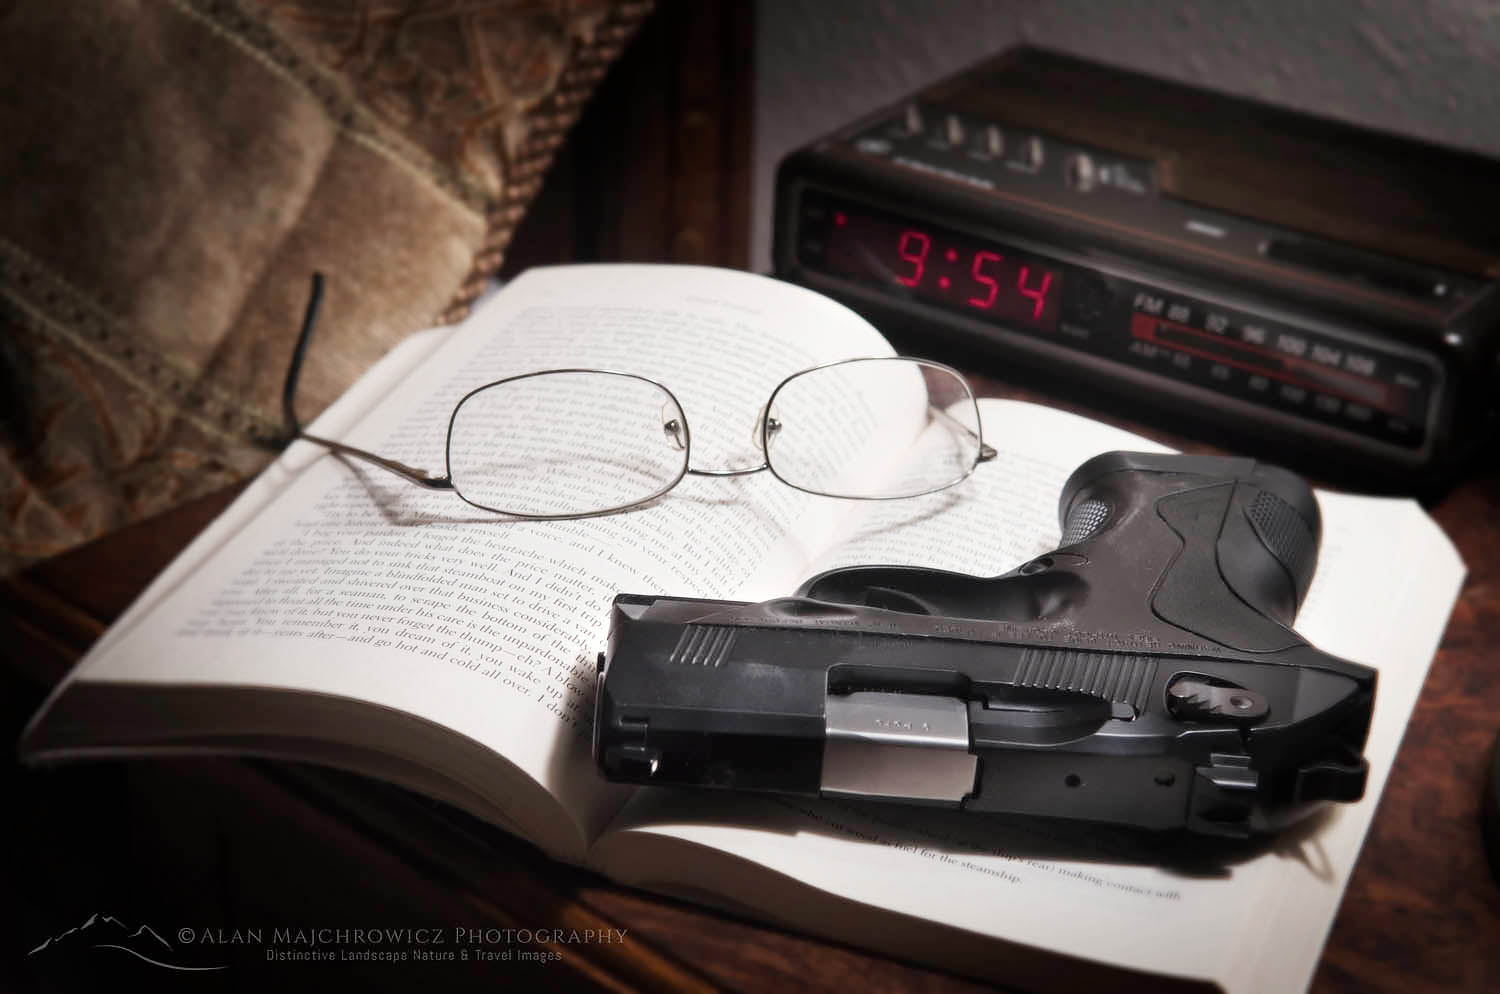 Beretta PX4 Storm semi-automatic pistol with 9mm ammunition on bedroom nightstand